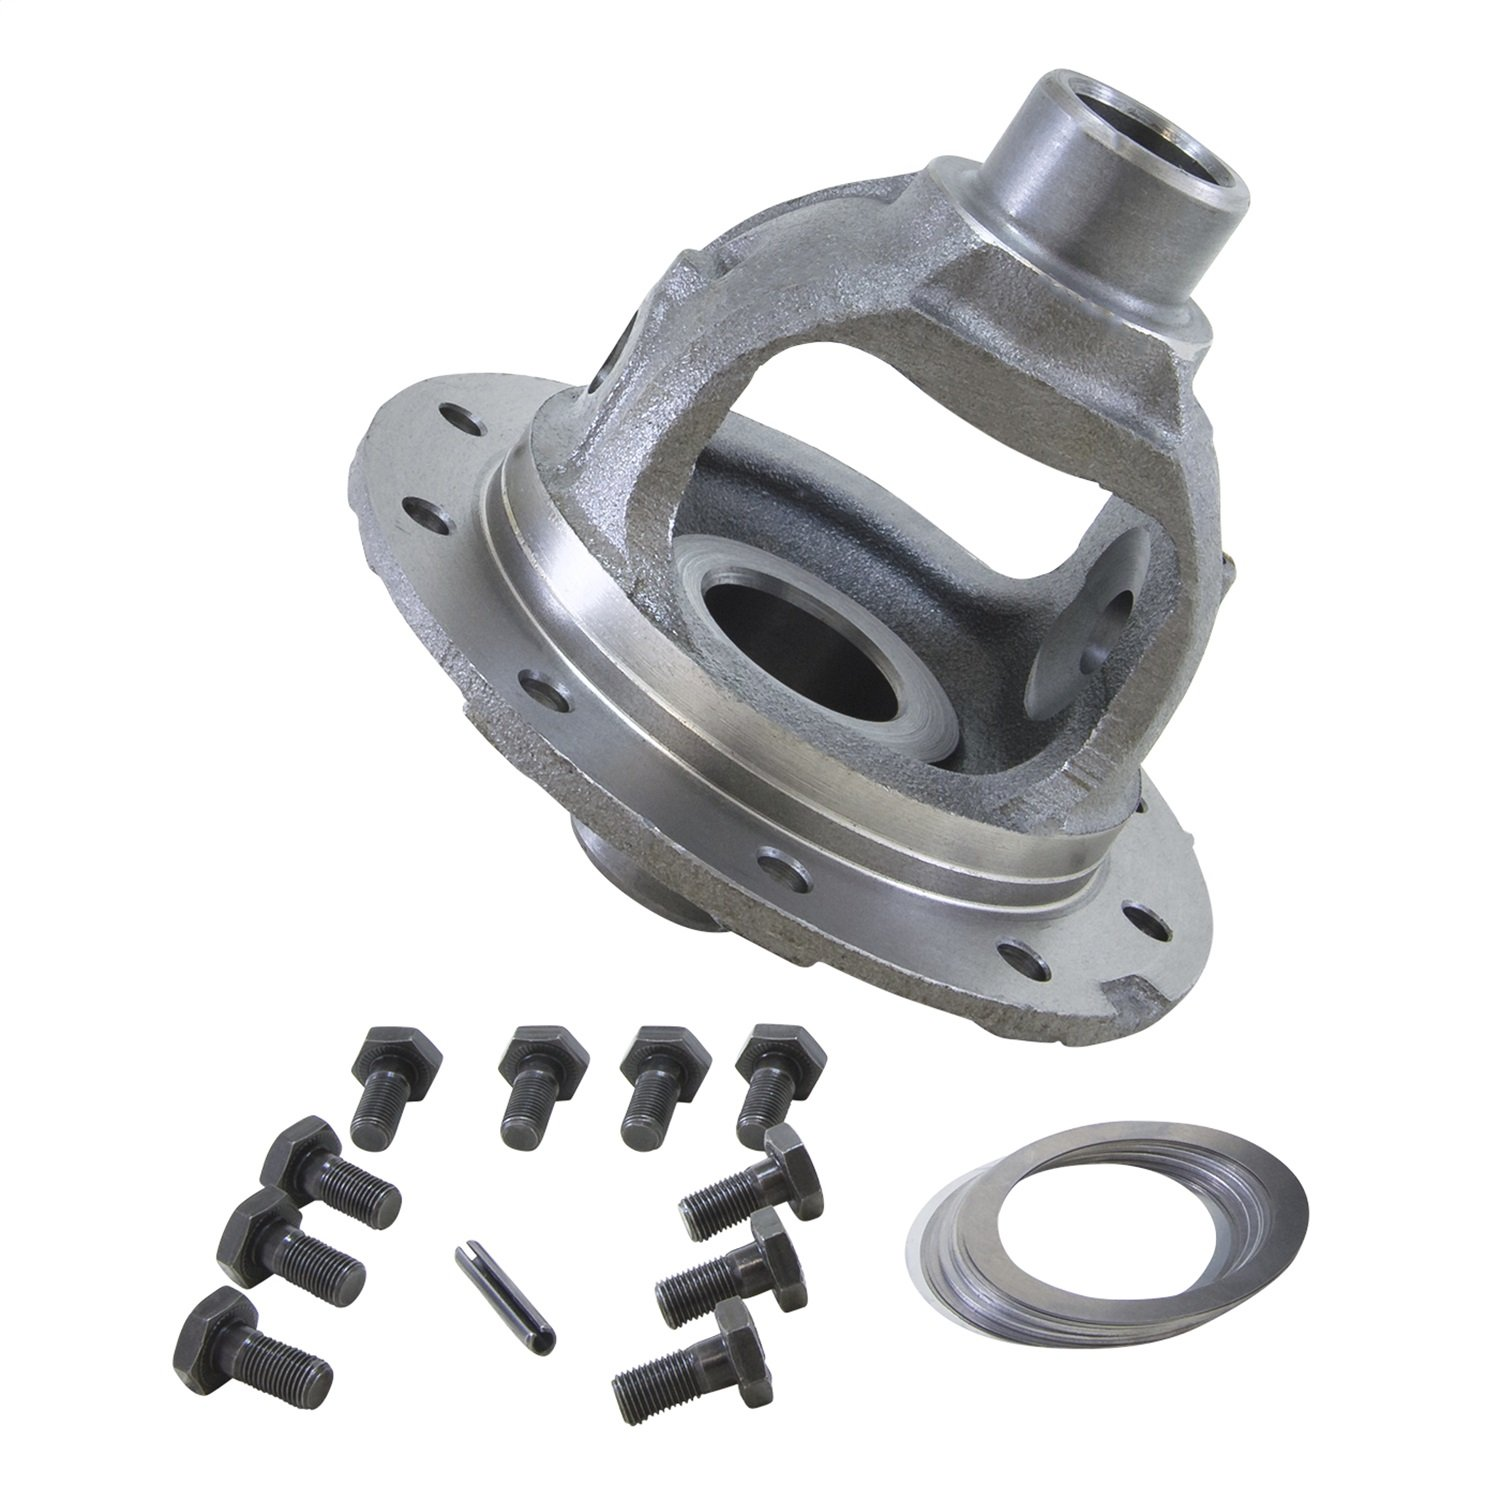 Yukon Replacement Standard Open Carrier Case for 30-Spline Dana 44 with 3.92 and Upward Axle Ratio YC D706025-X